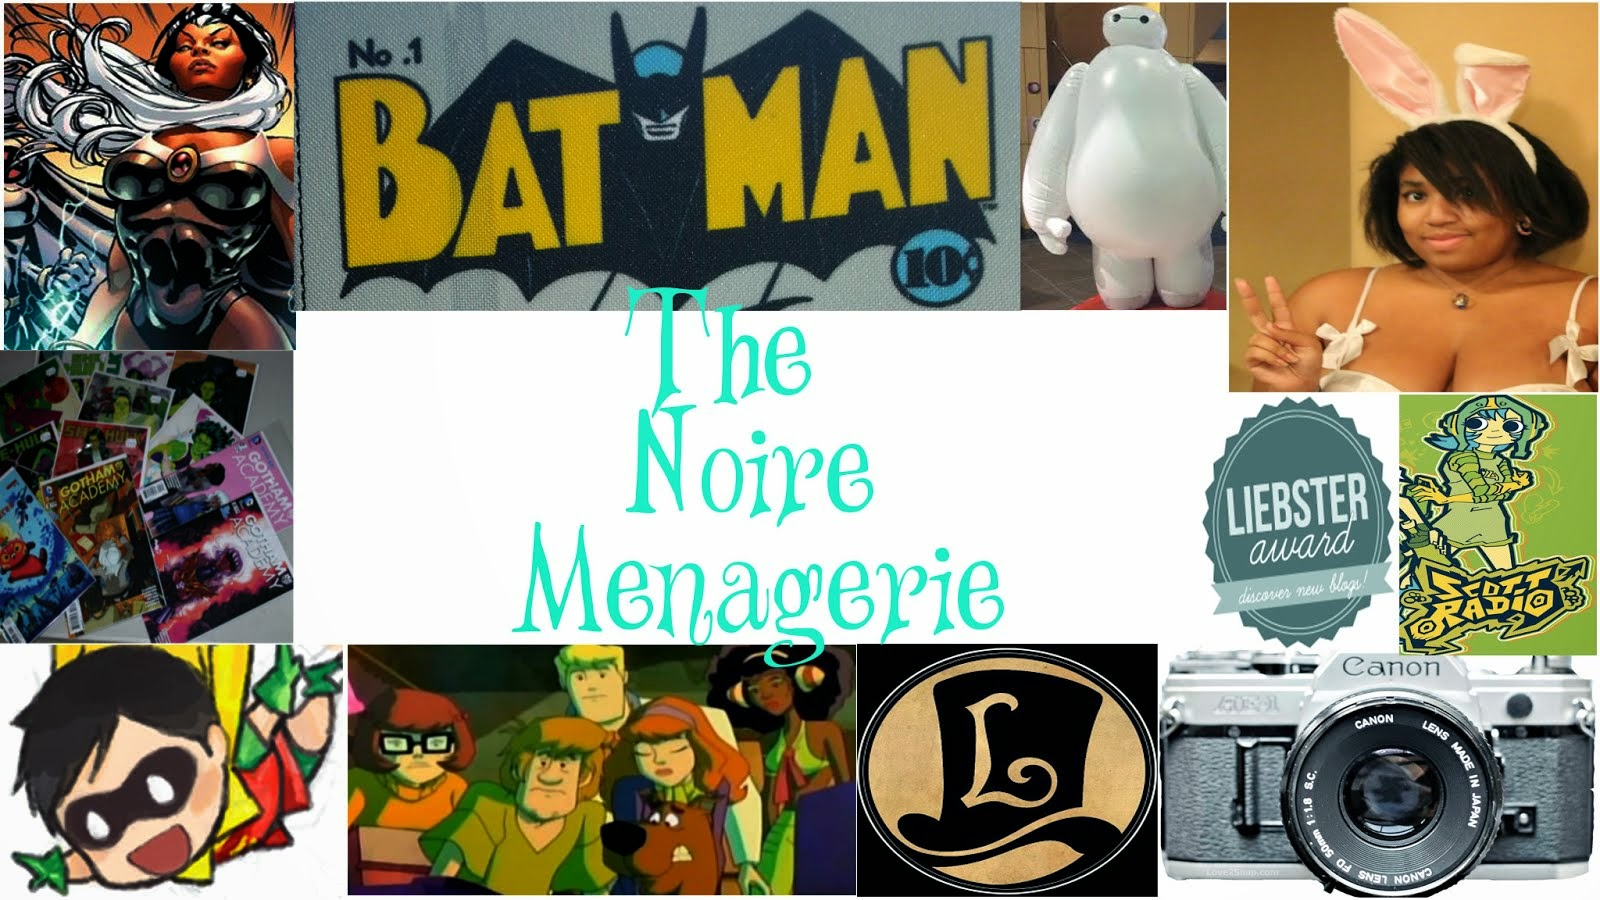 The Noire Menagerie